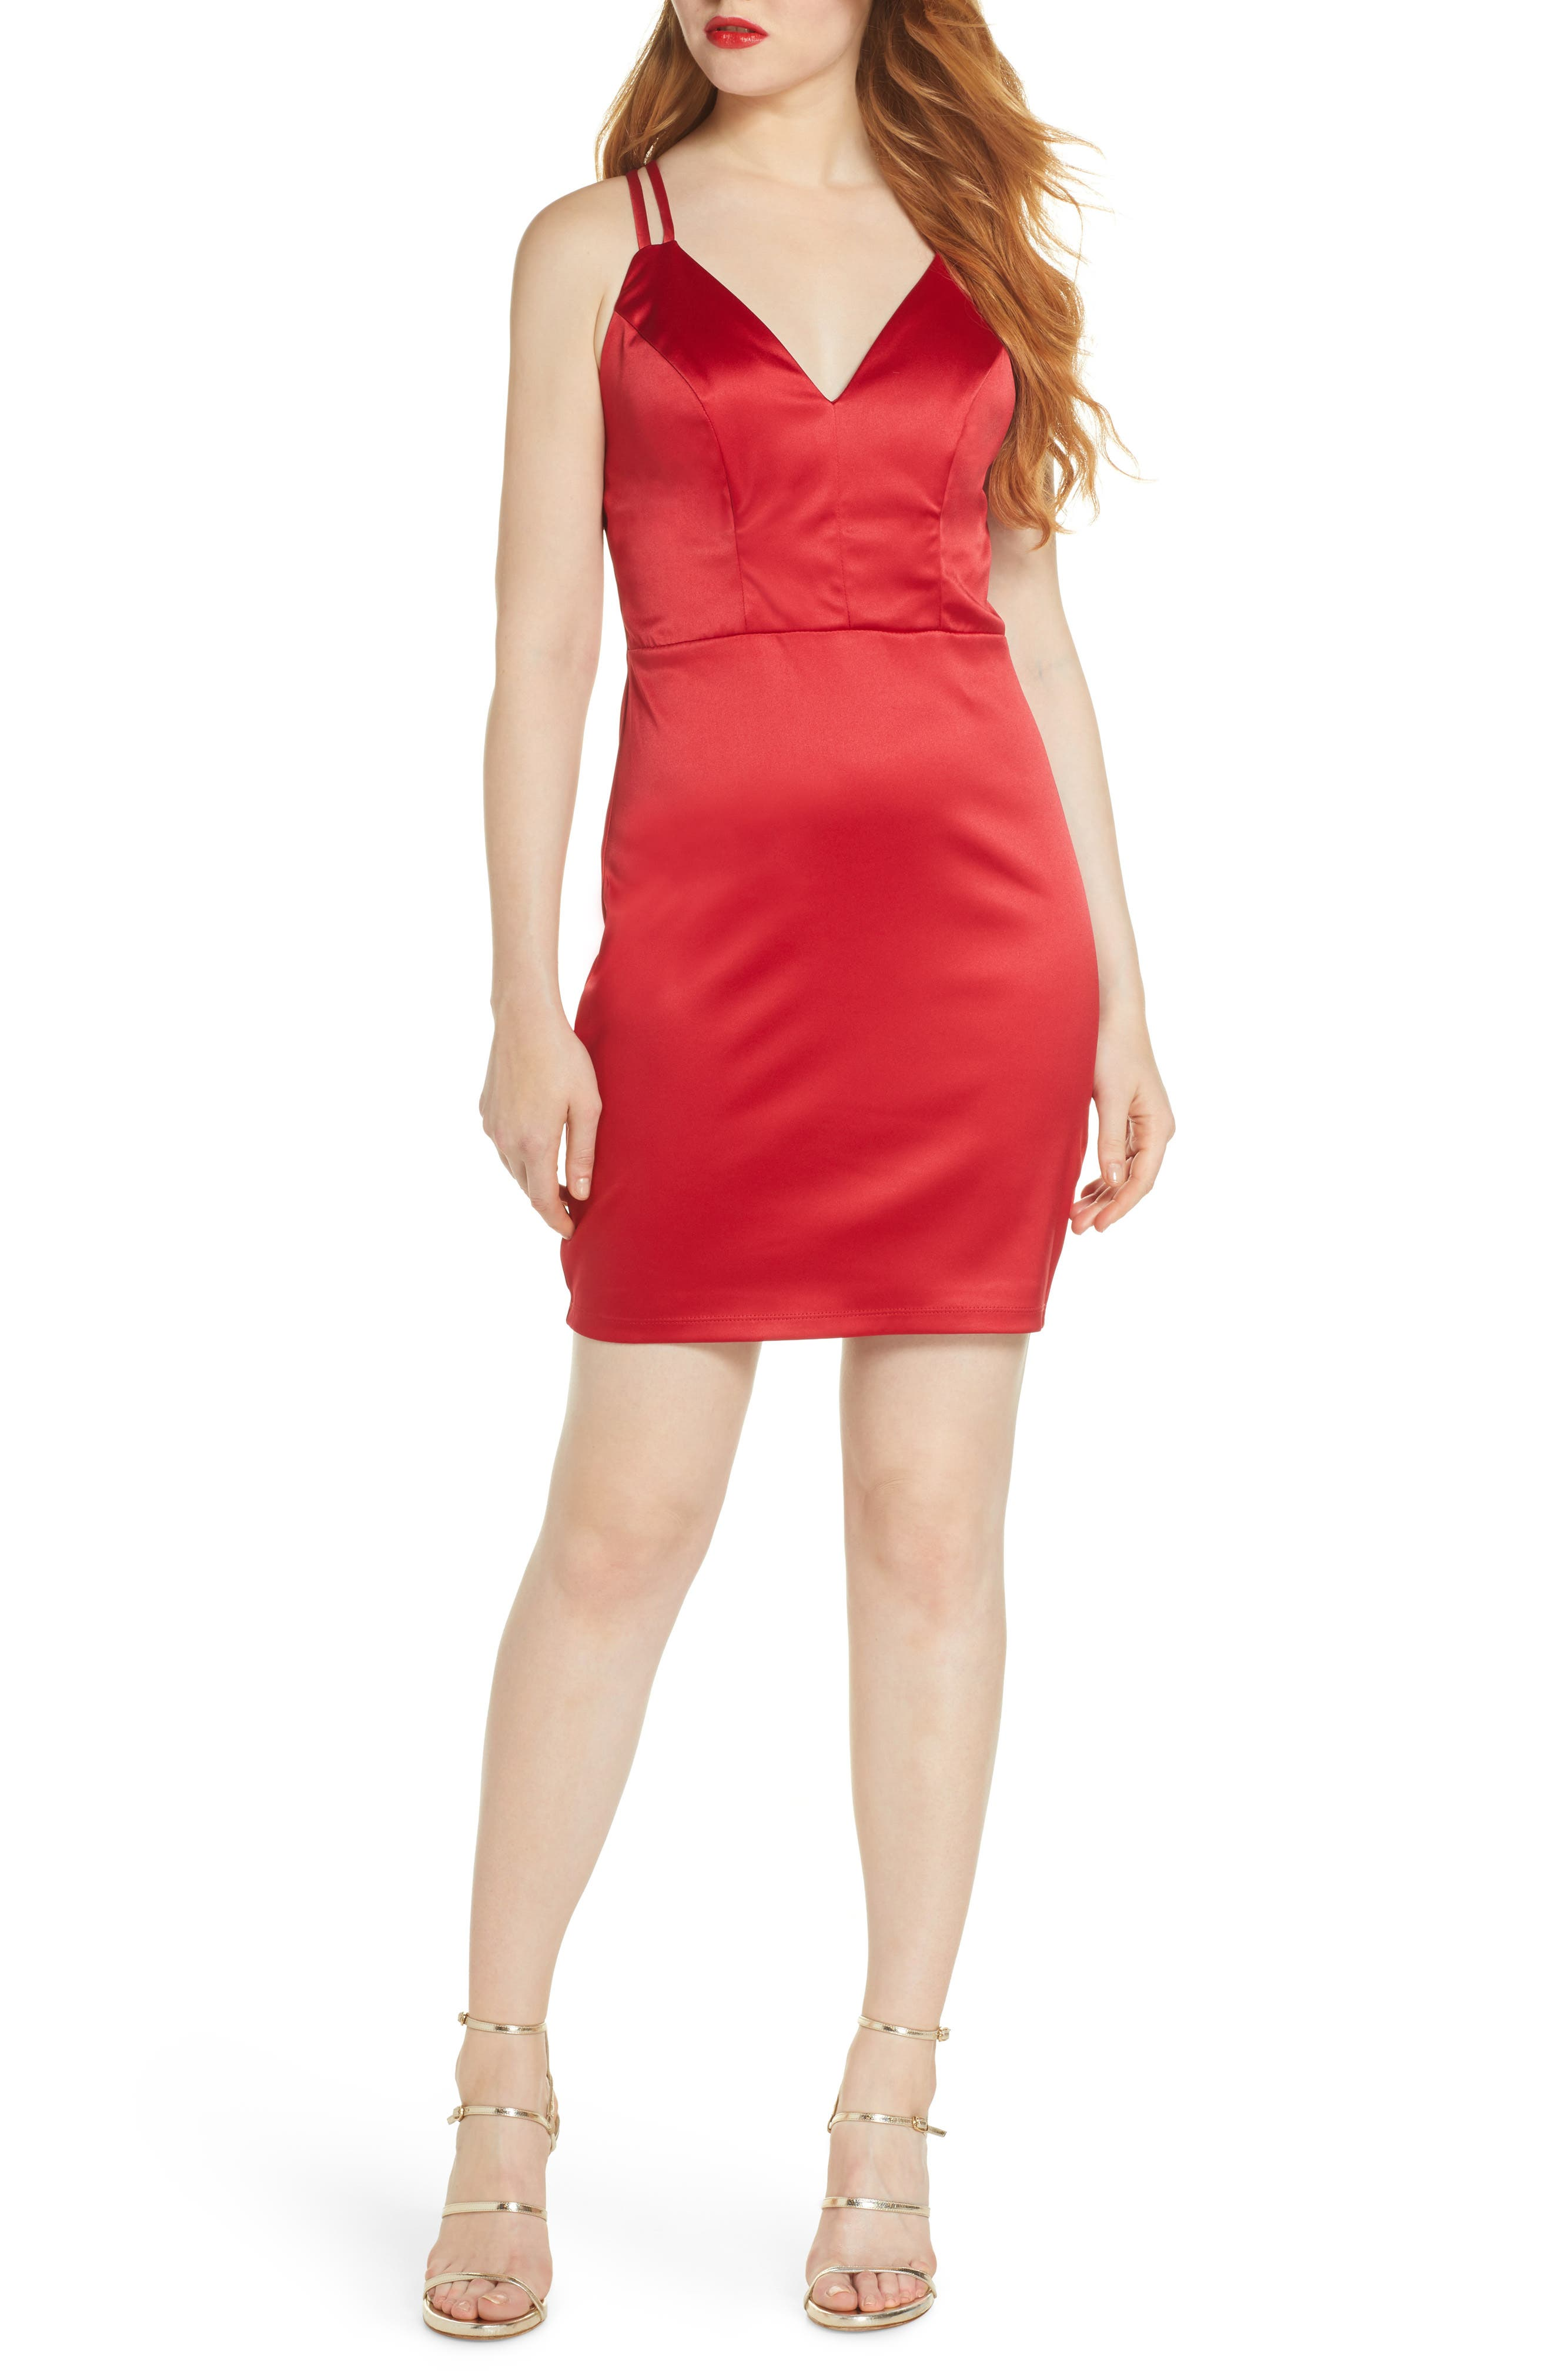 Sequin Hearts Strappy Back Minidress, Red